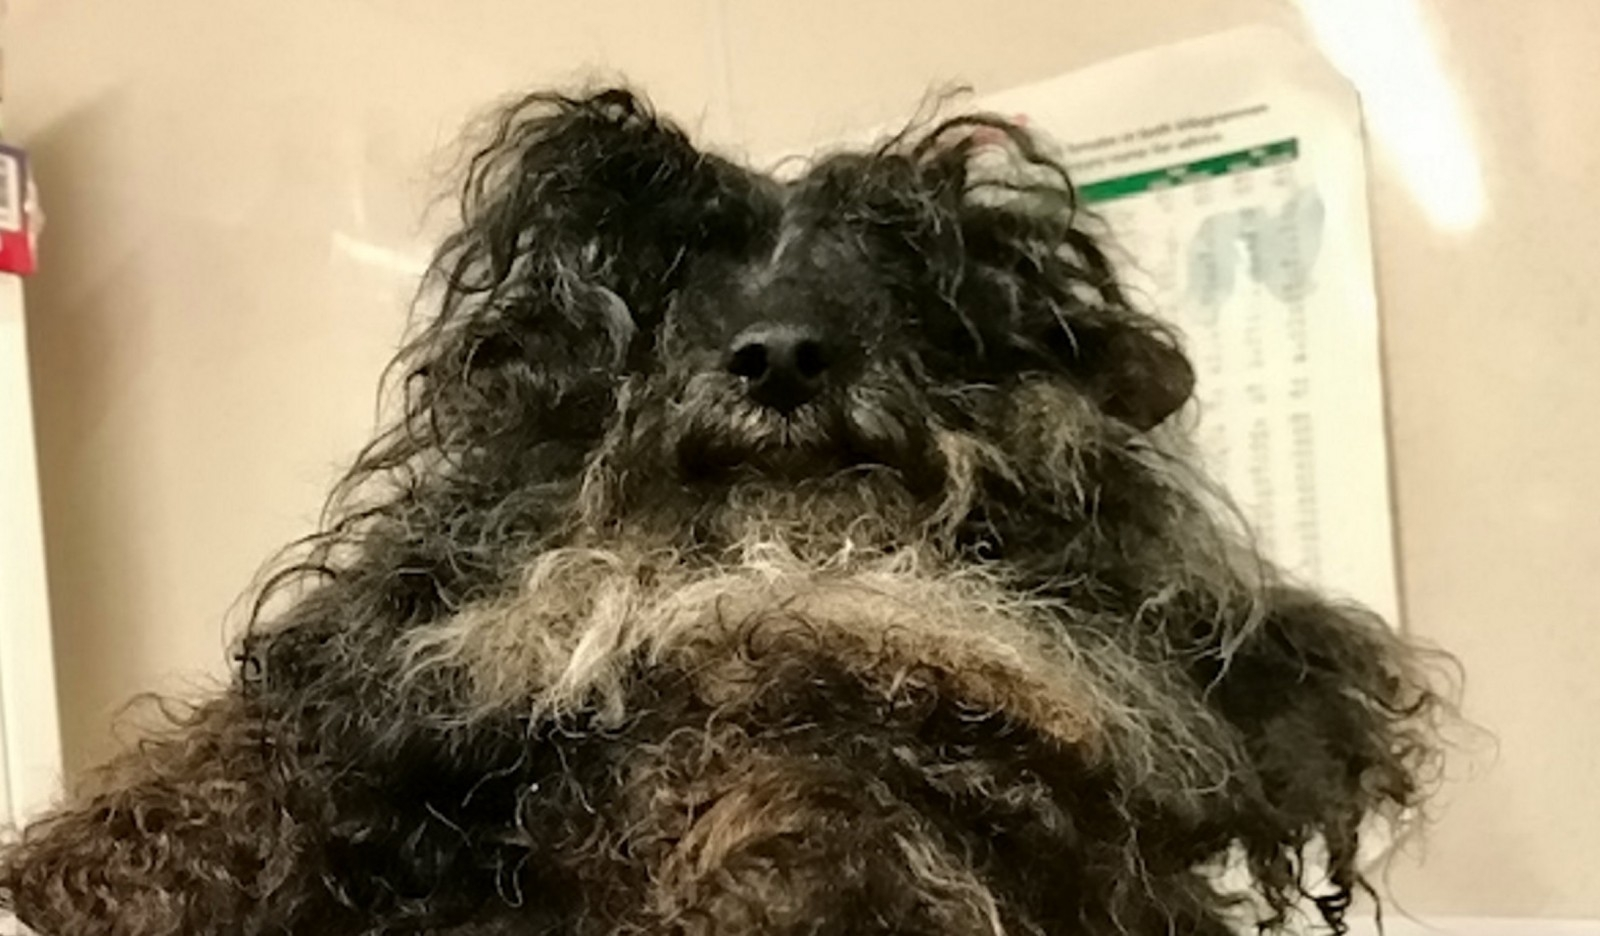 Rescue Staff Forced To Shave Matted Hair Off Poodle - Because It Was So Mistreated It Couldn't Eat Properly